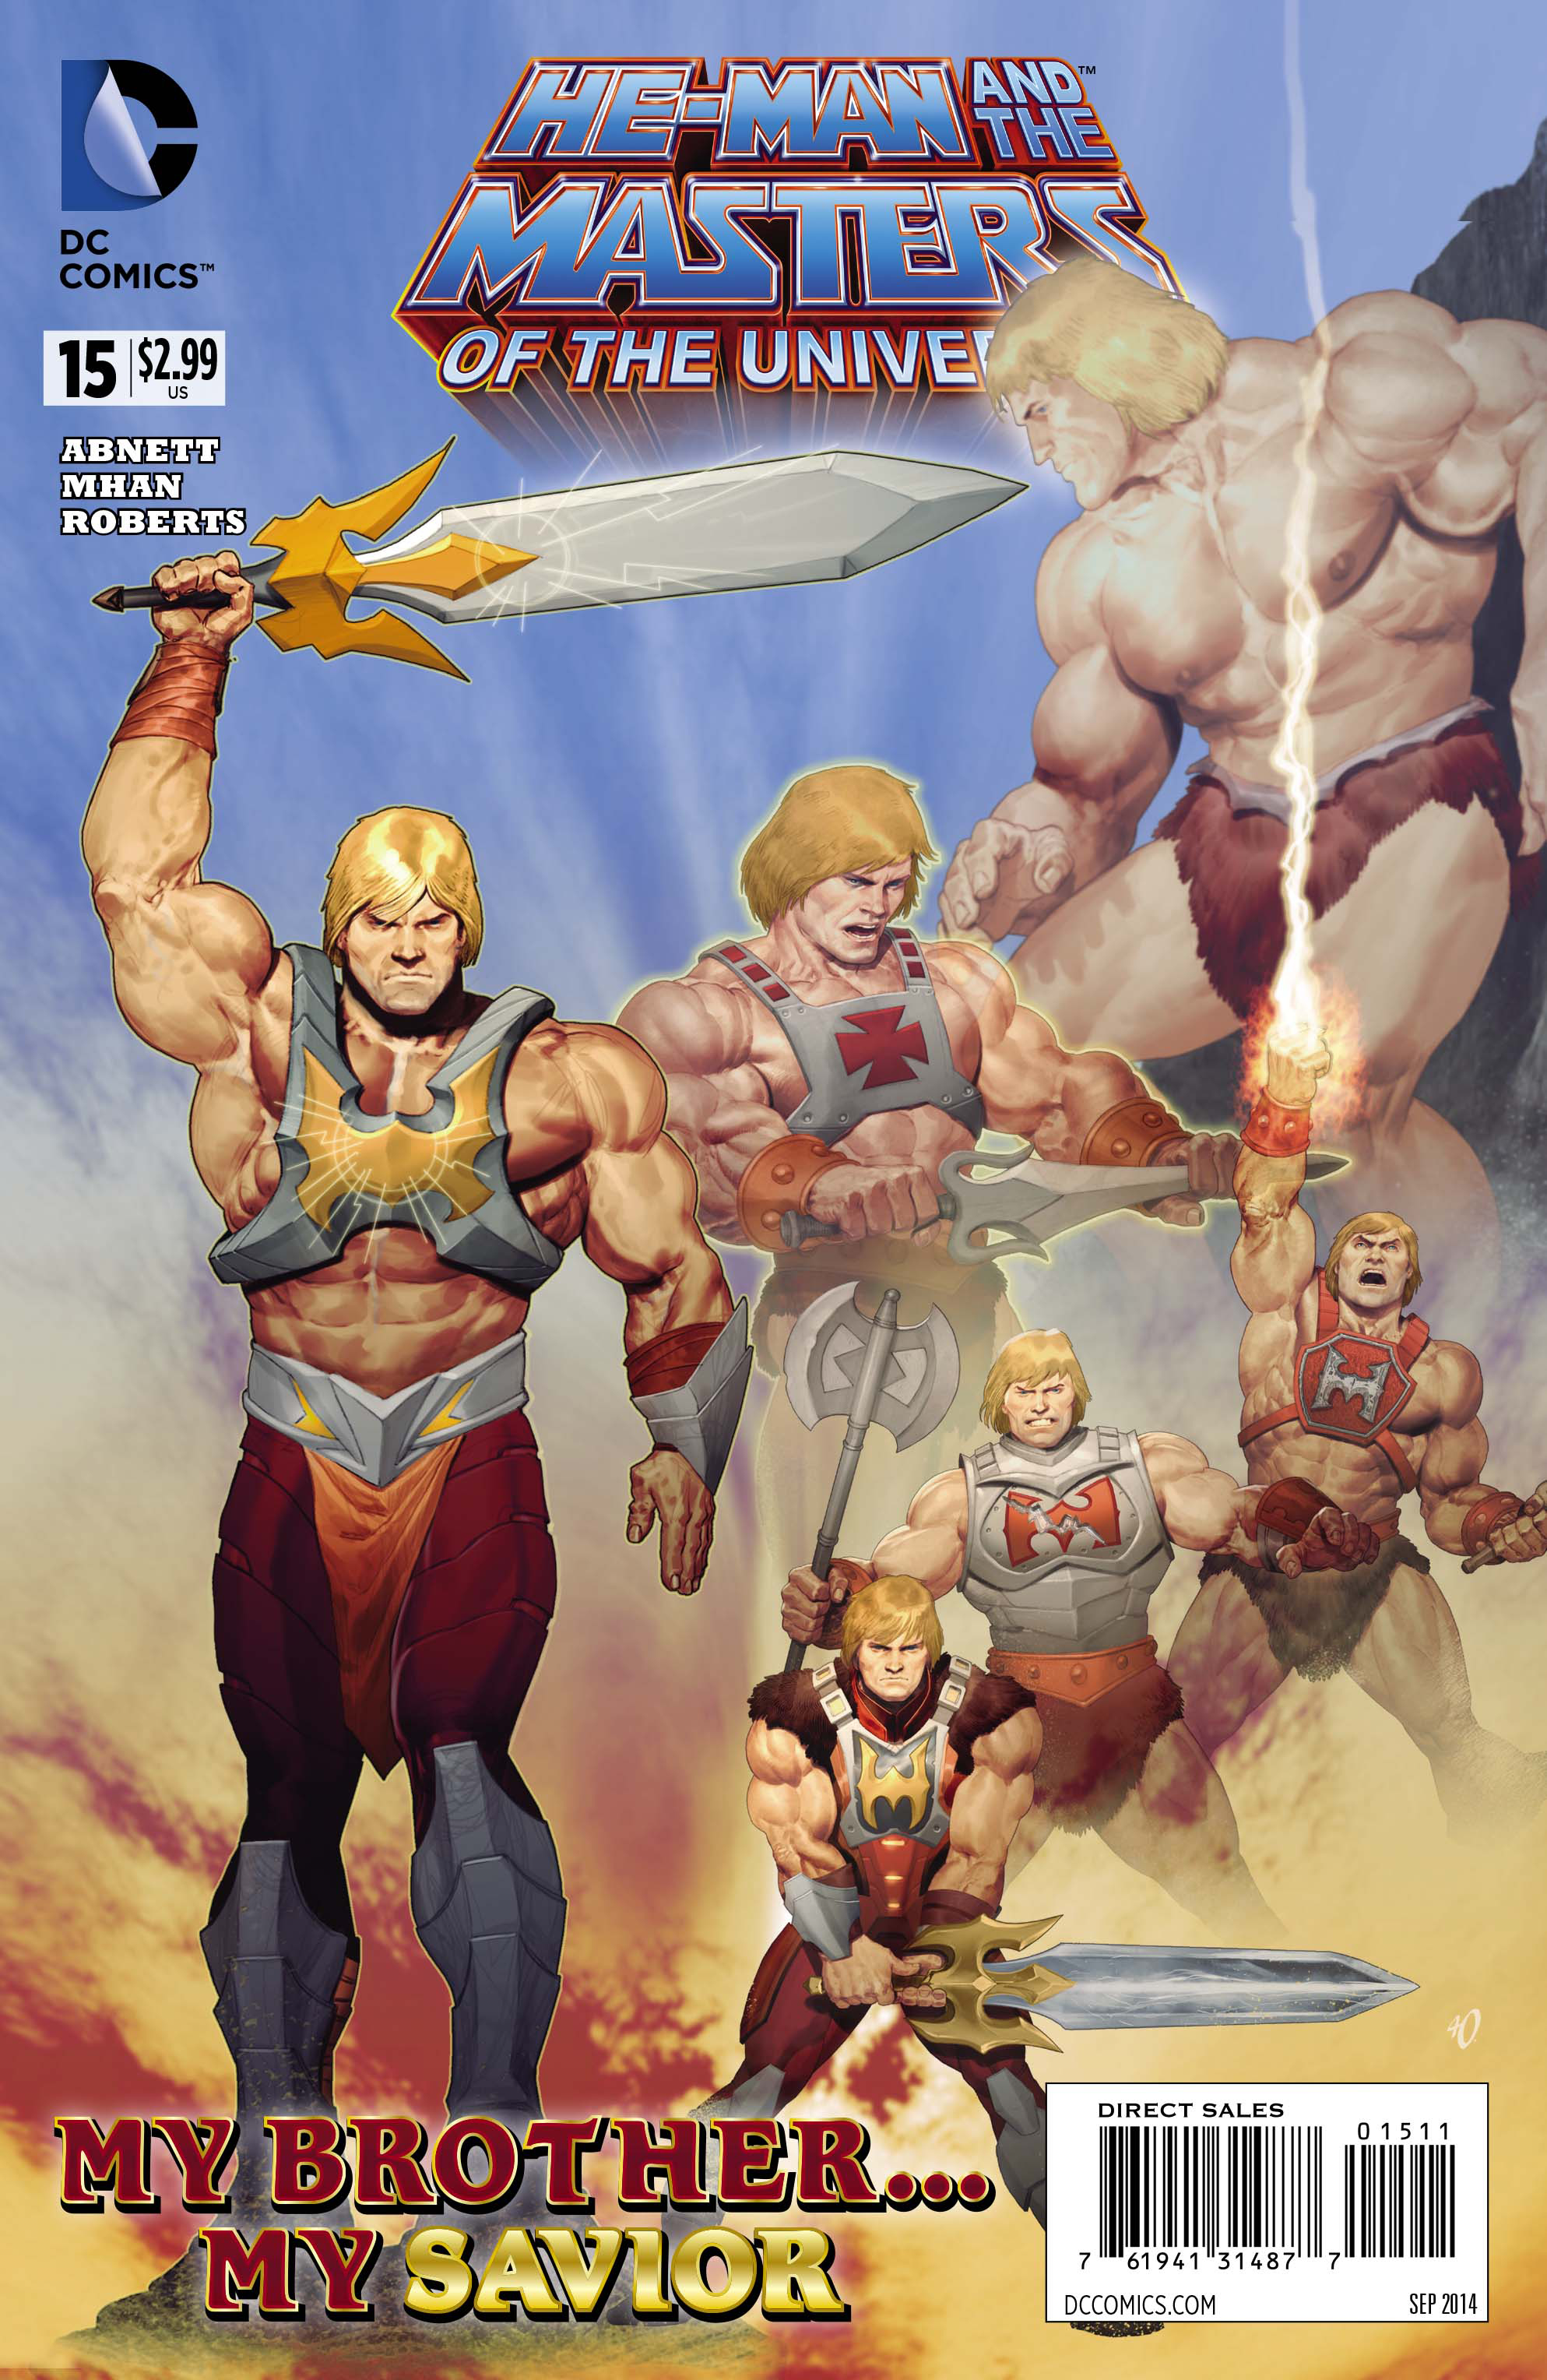 HE MAN AND THE MASTERS OF THE UNIVERSE #15